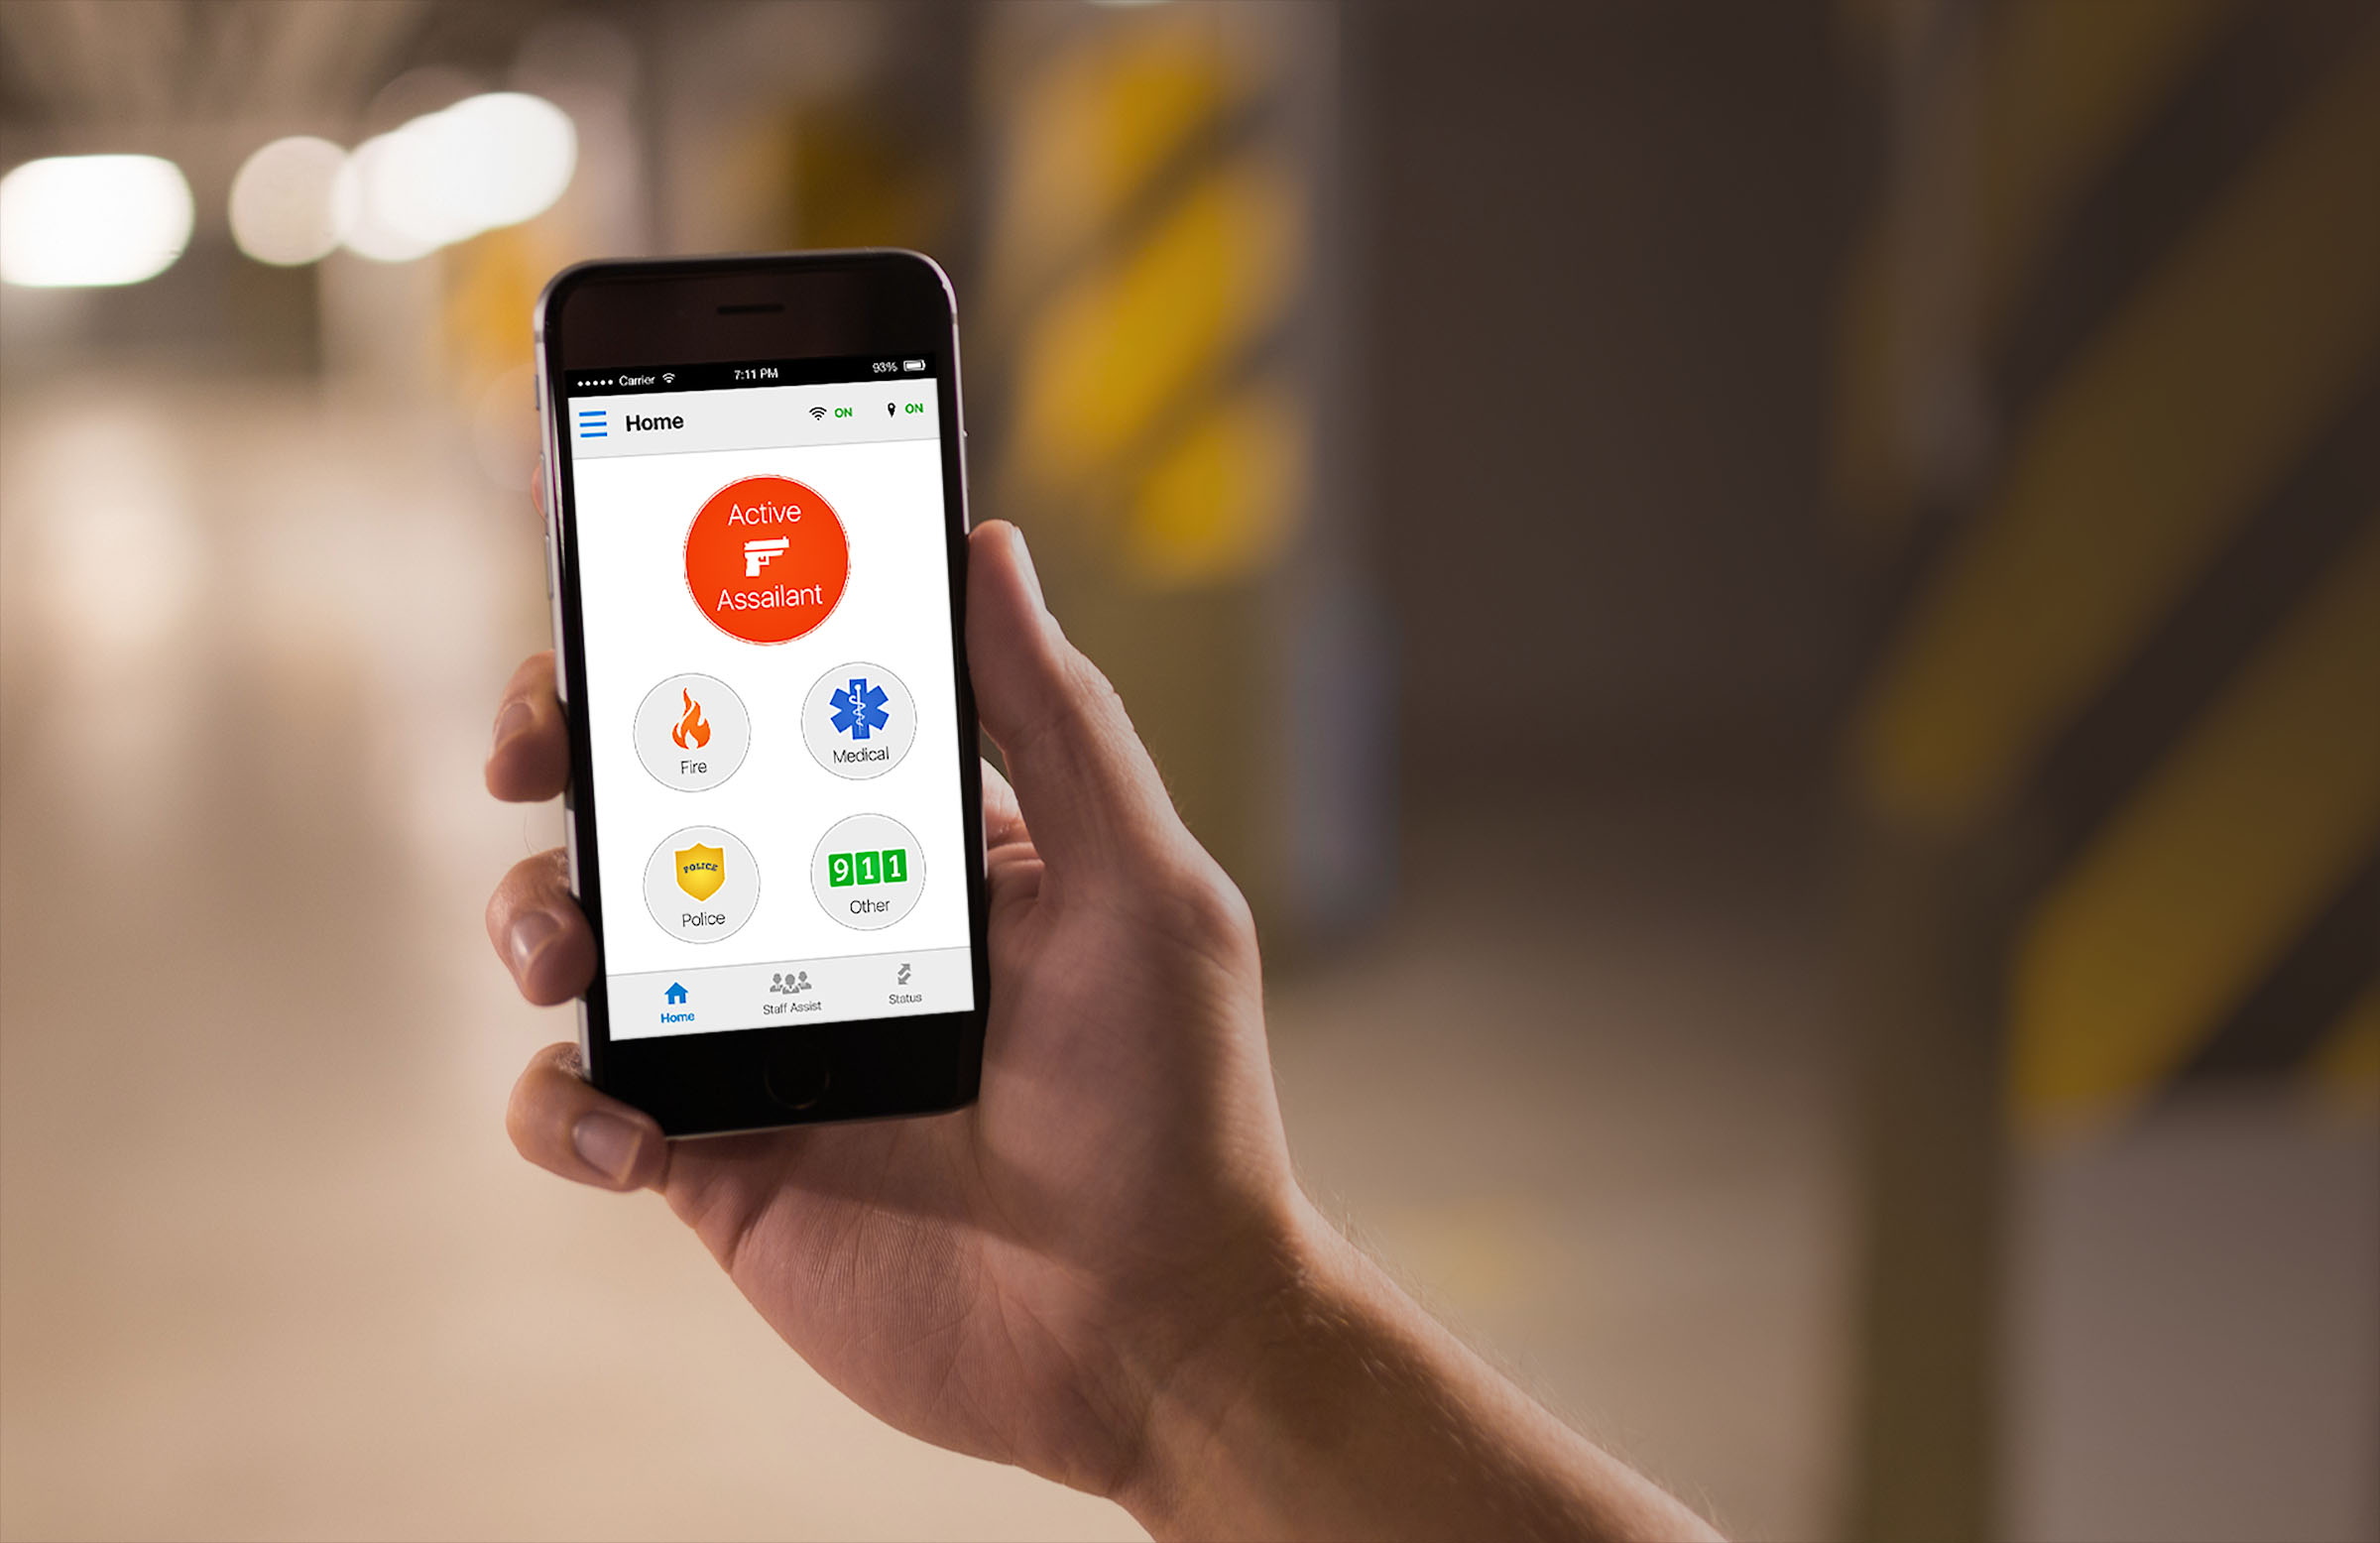 hand holding phone with panic button app on screen